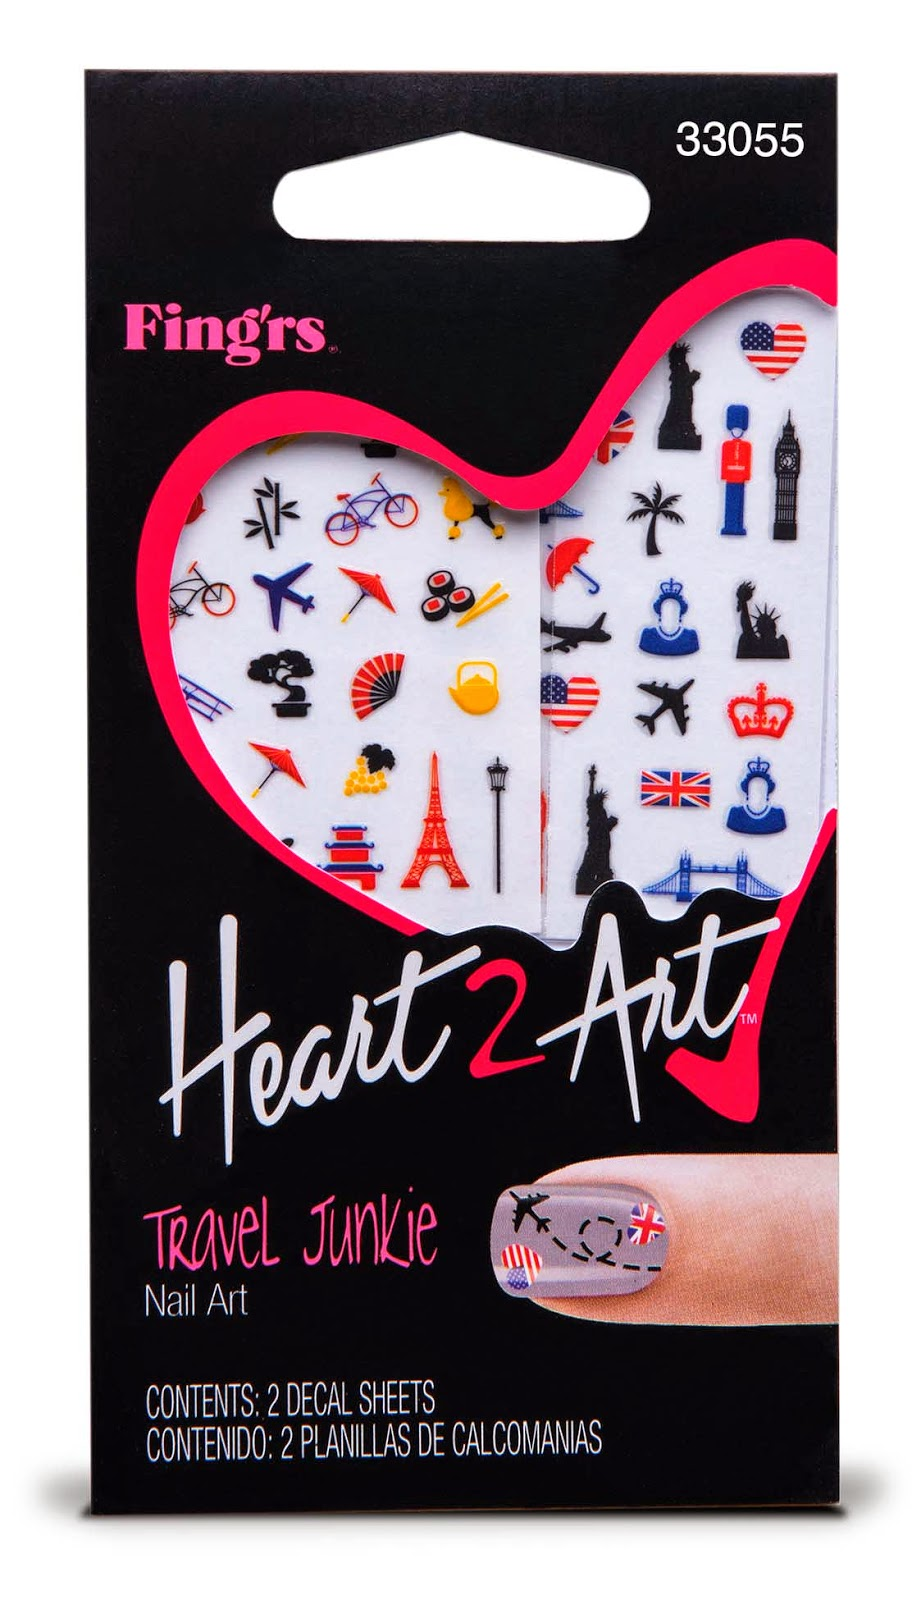 Heart2Art - Travel Junkie